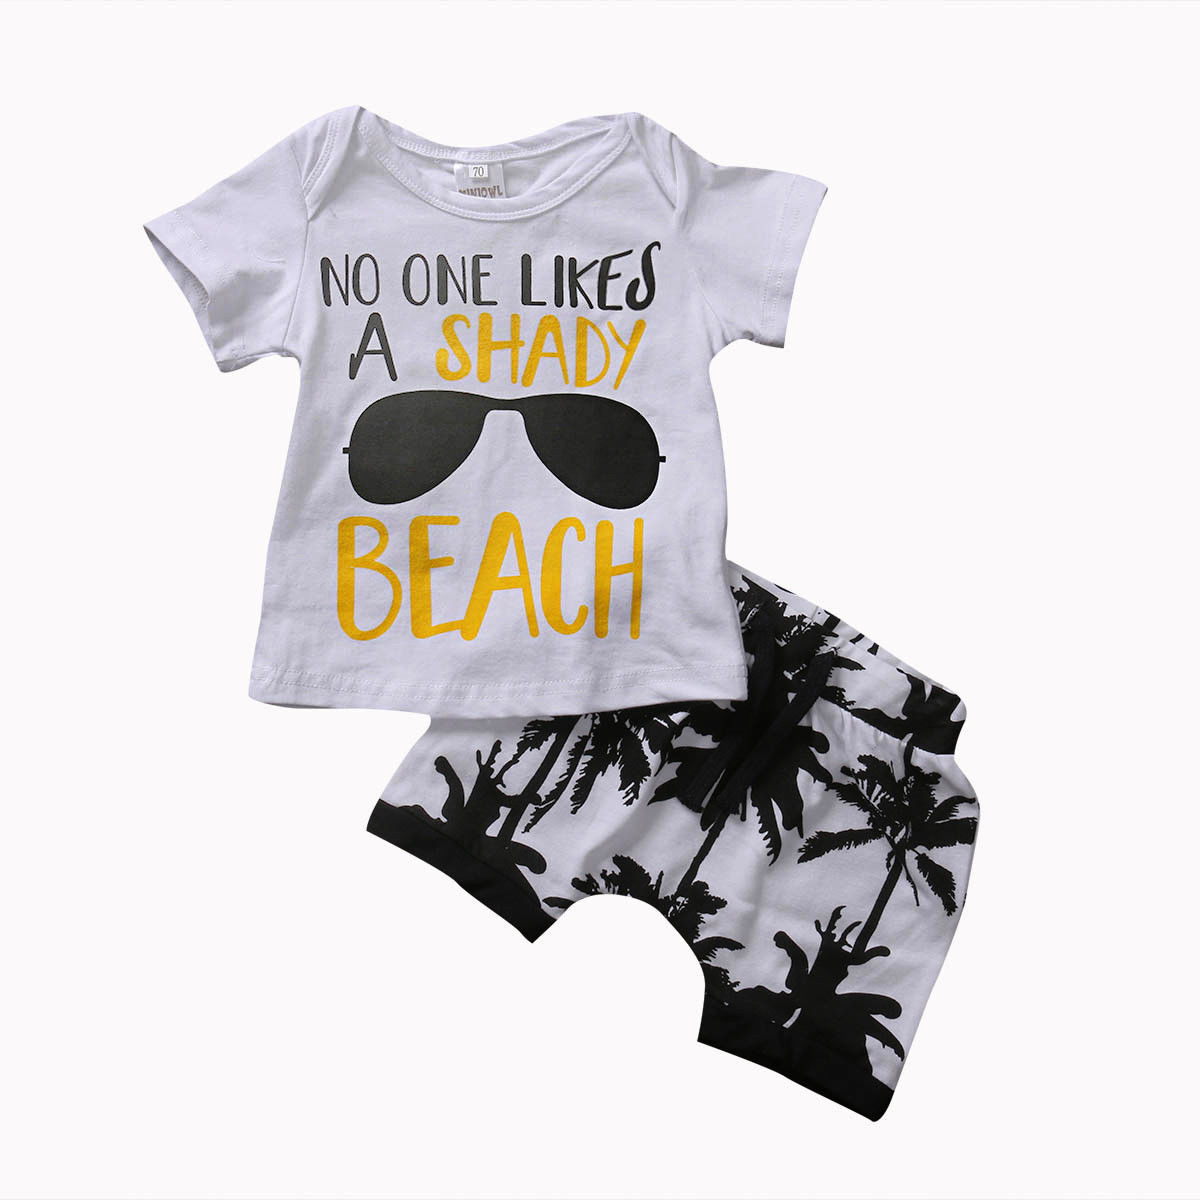 Summer 2017 Toddler Newborn Baby Boy 2Pcs Outfit T-shirt Tops+Coconut trees Shorts Clothes Set 0-3T